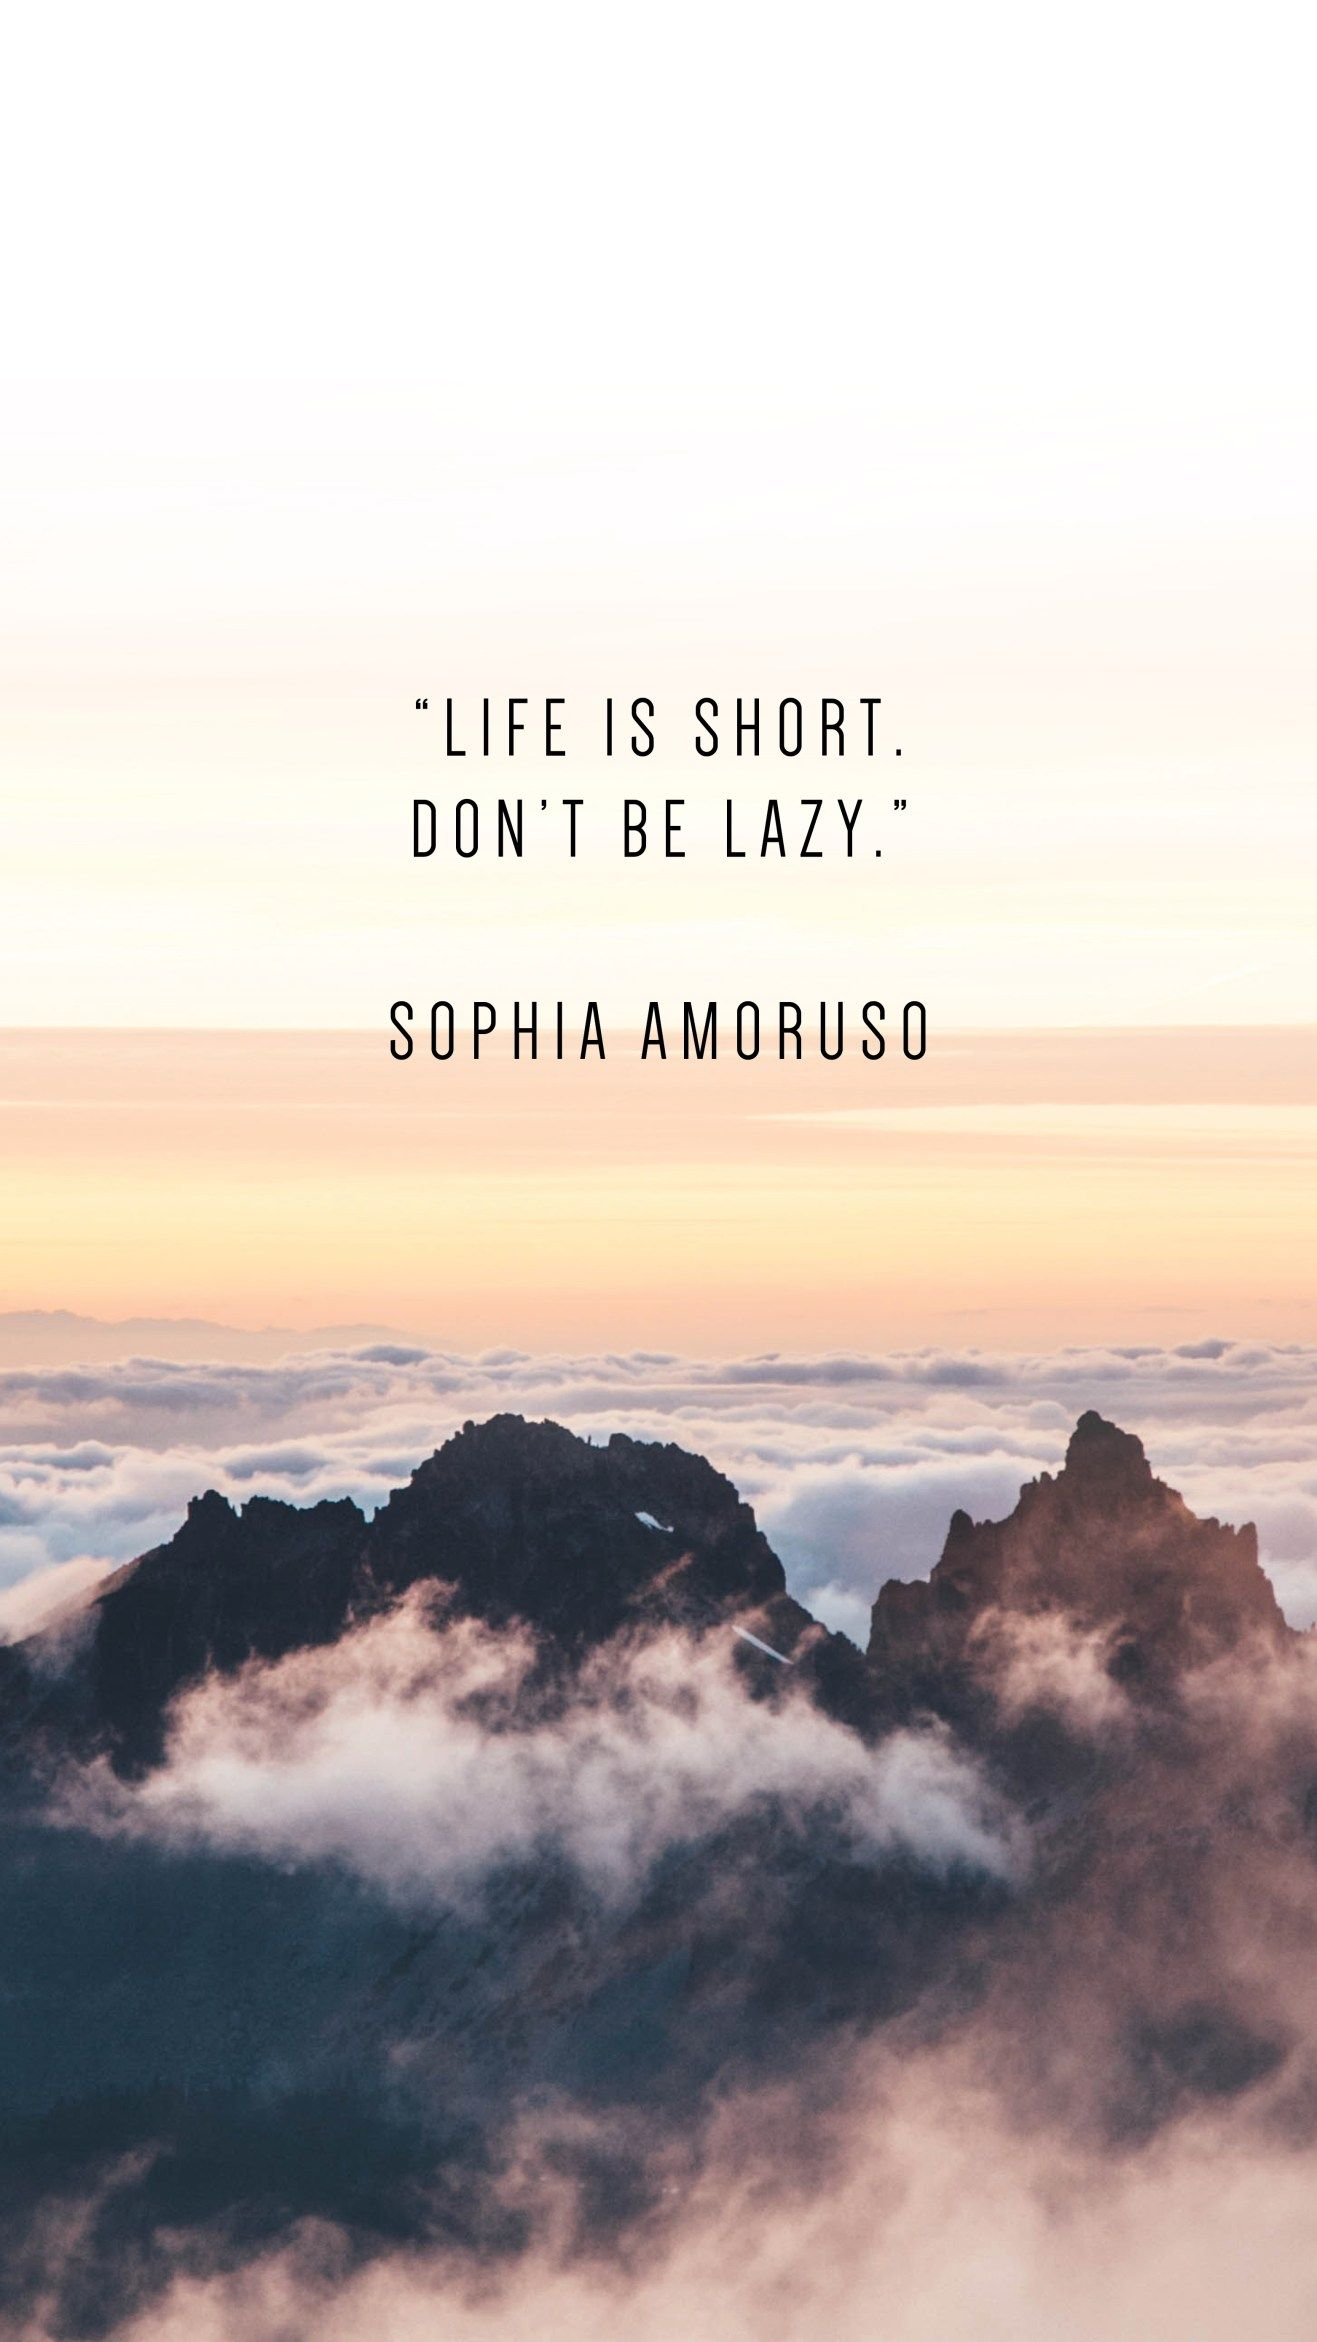 30 Phone Wallpapers To Inspire Sophia Amoruso Quotes Life Quotes Life